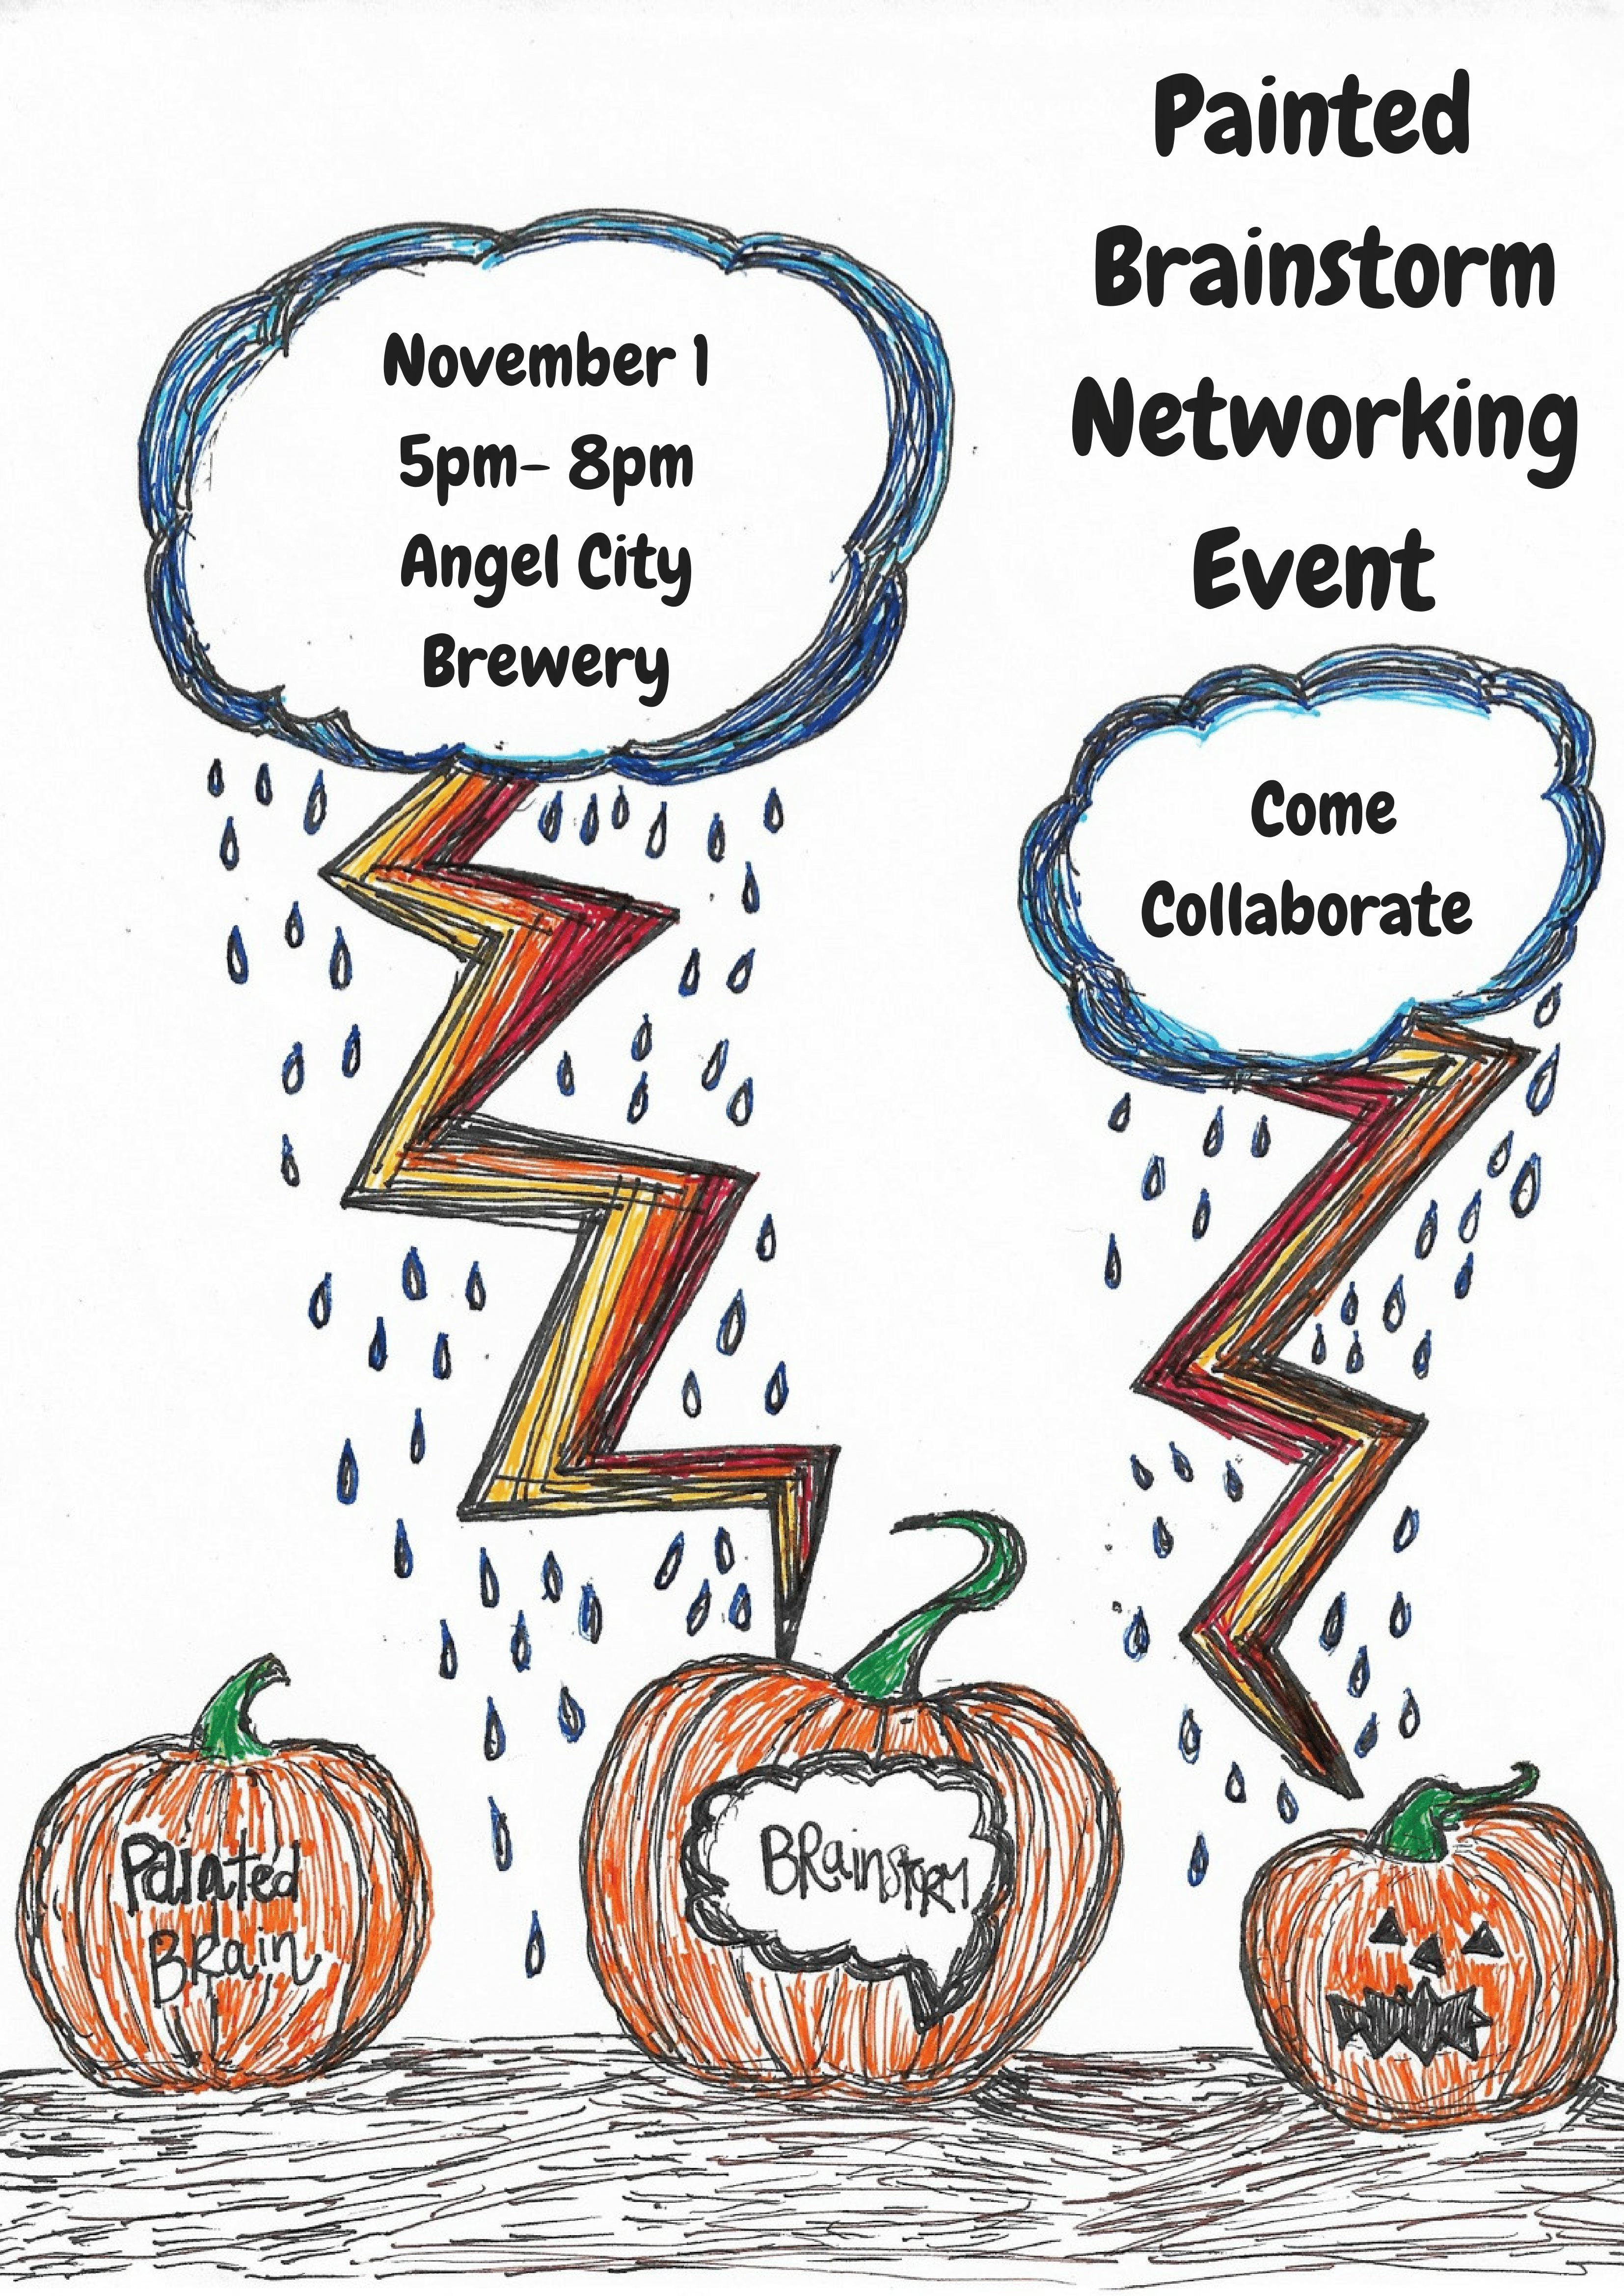 Painted Brainstorm Networking Event